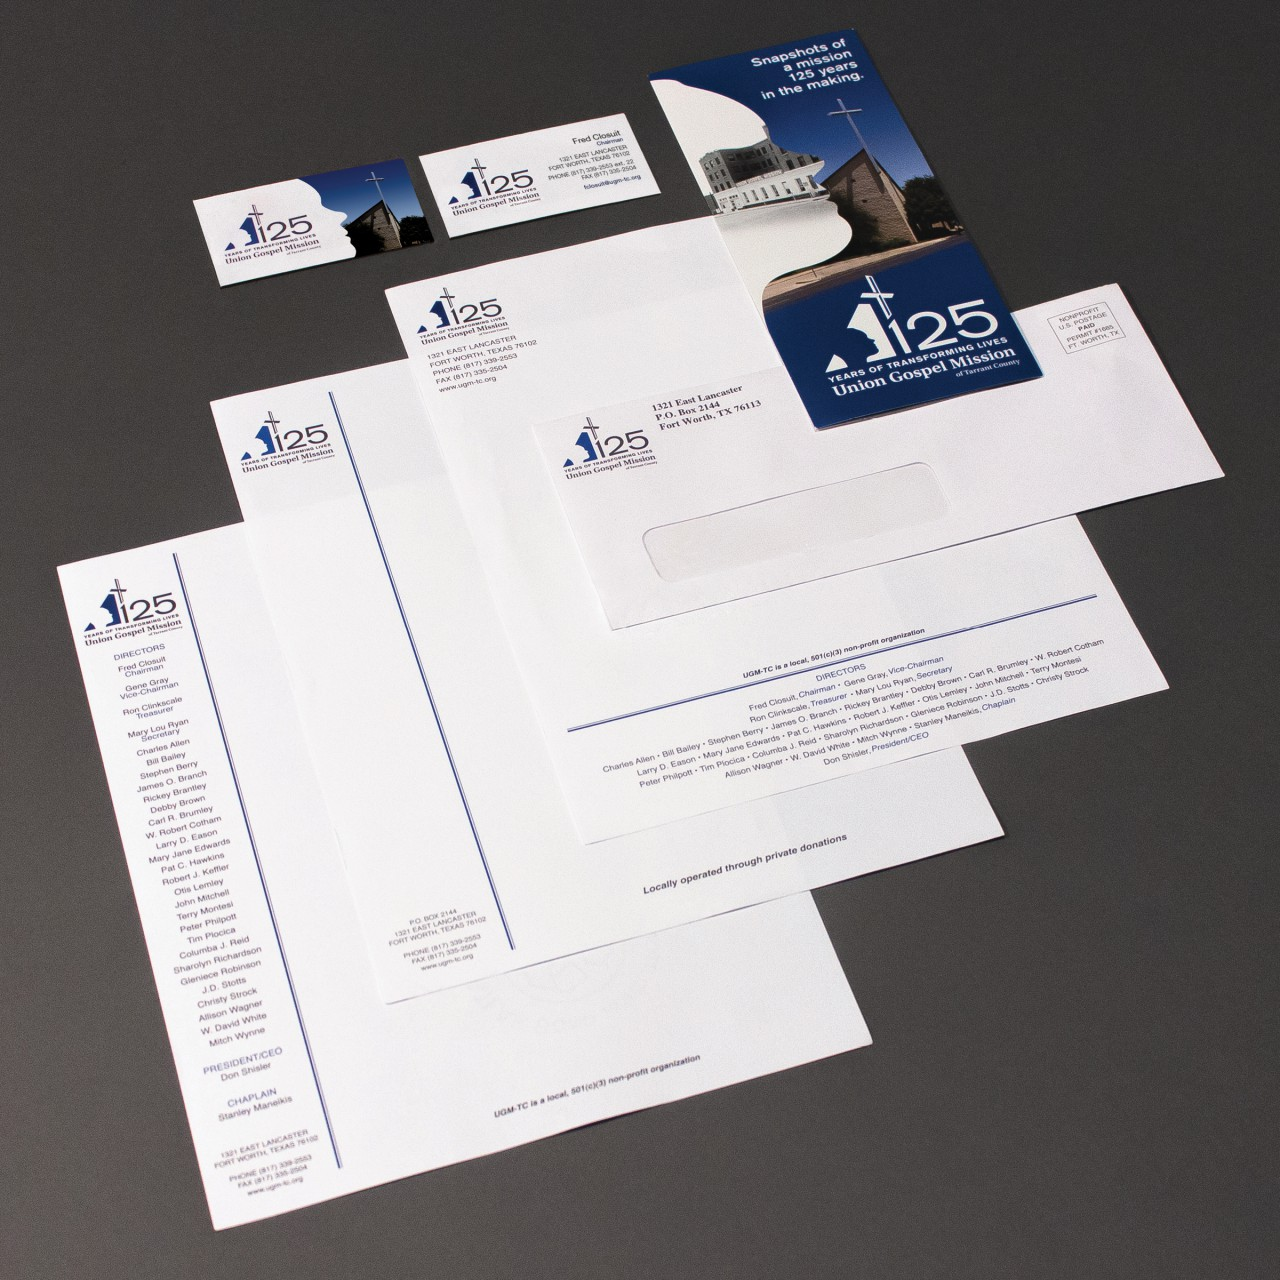 Image of Union Gospel Mission 125th Anniversary stationery application